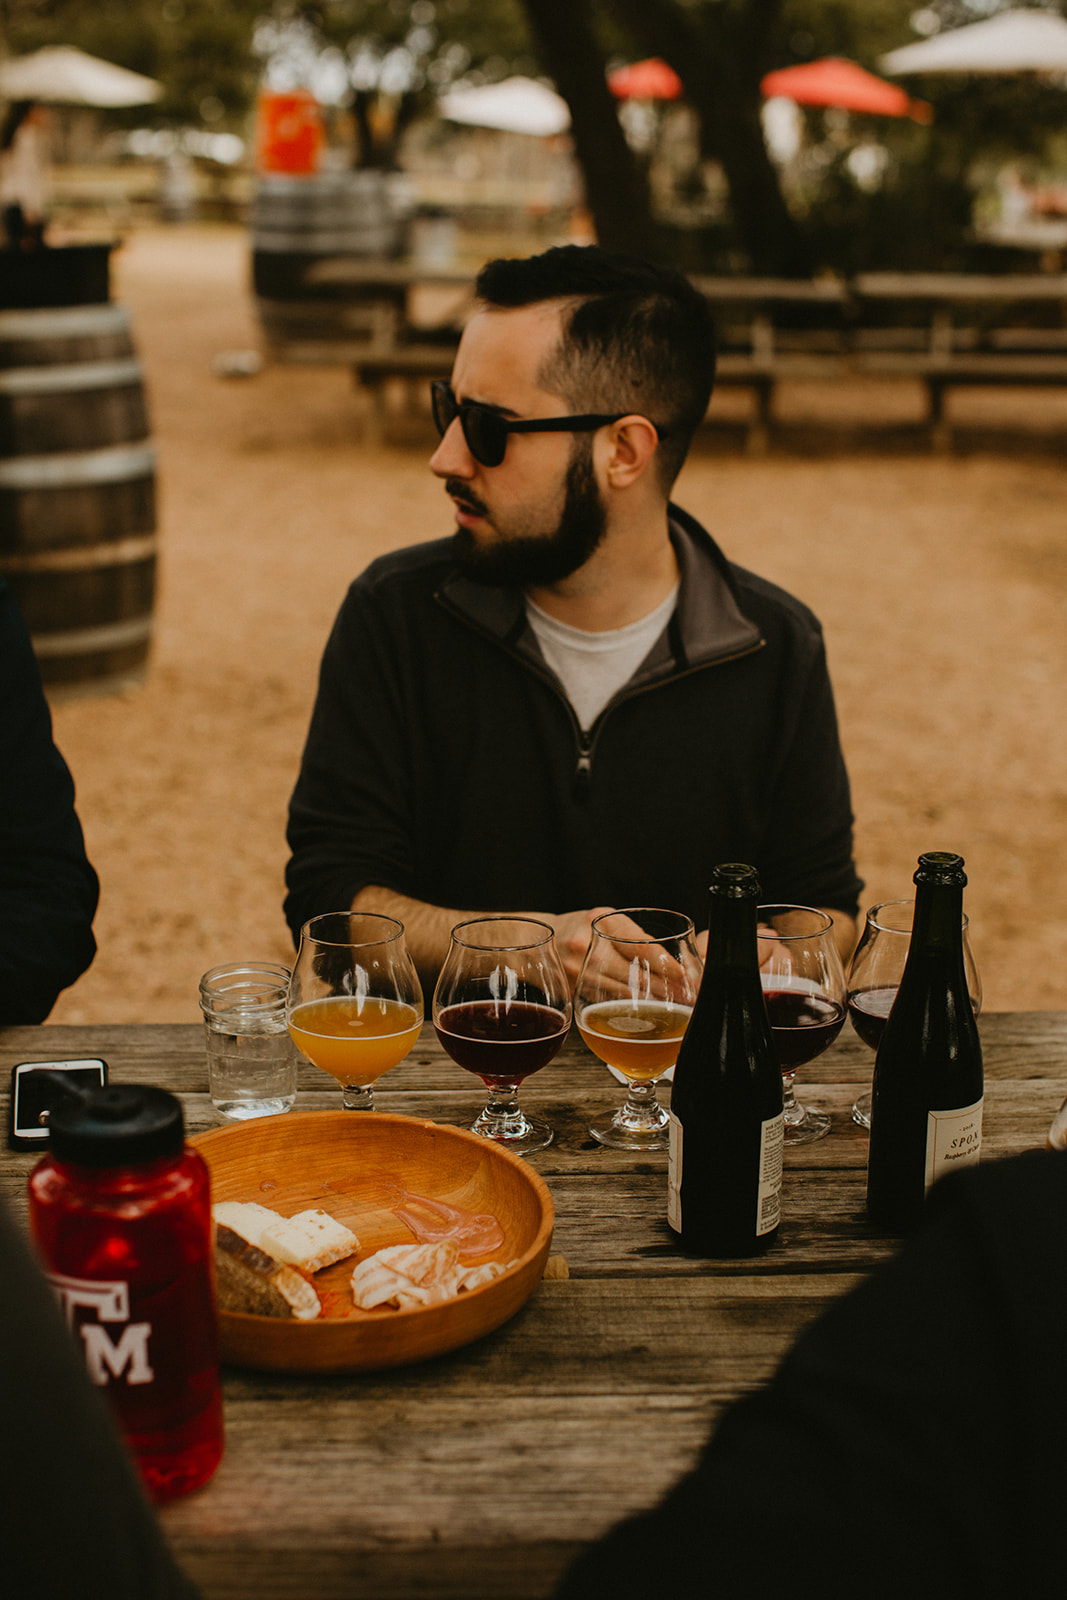 Destination wedding planner + Jester King Brewery + Groom Wedding Day Austin, Dripping Springs, Texas + beer + craft beer